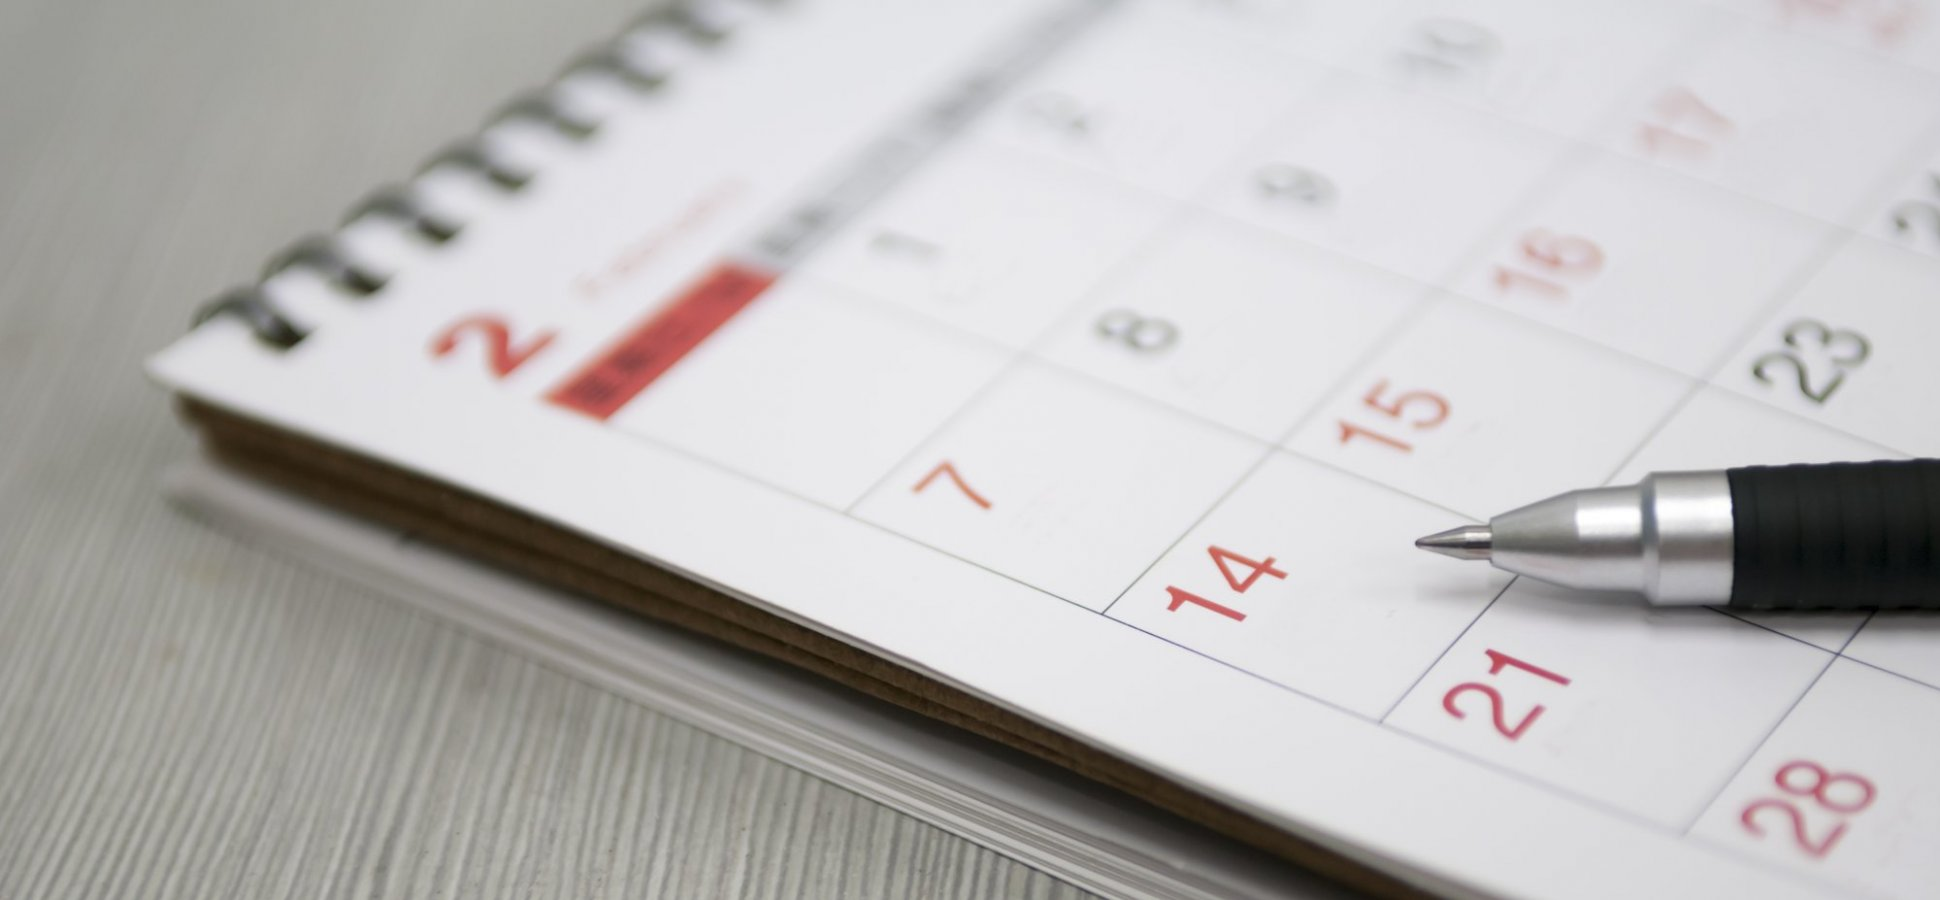 Manage Your Time Better with a Weekly Review